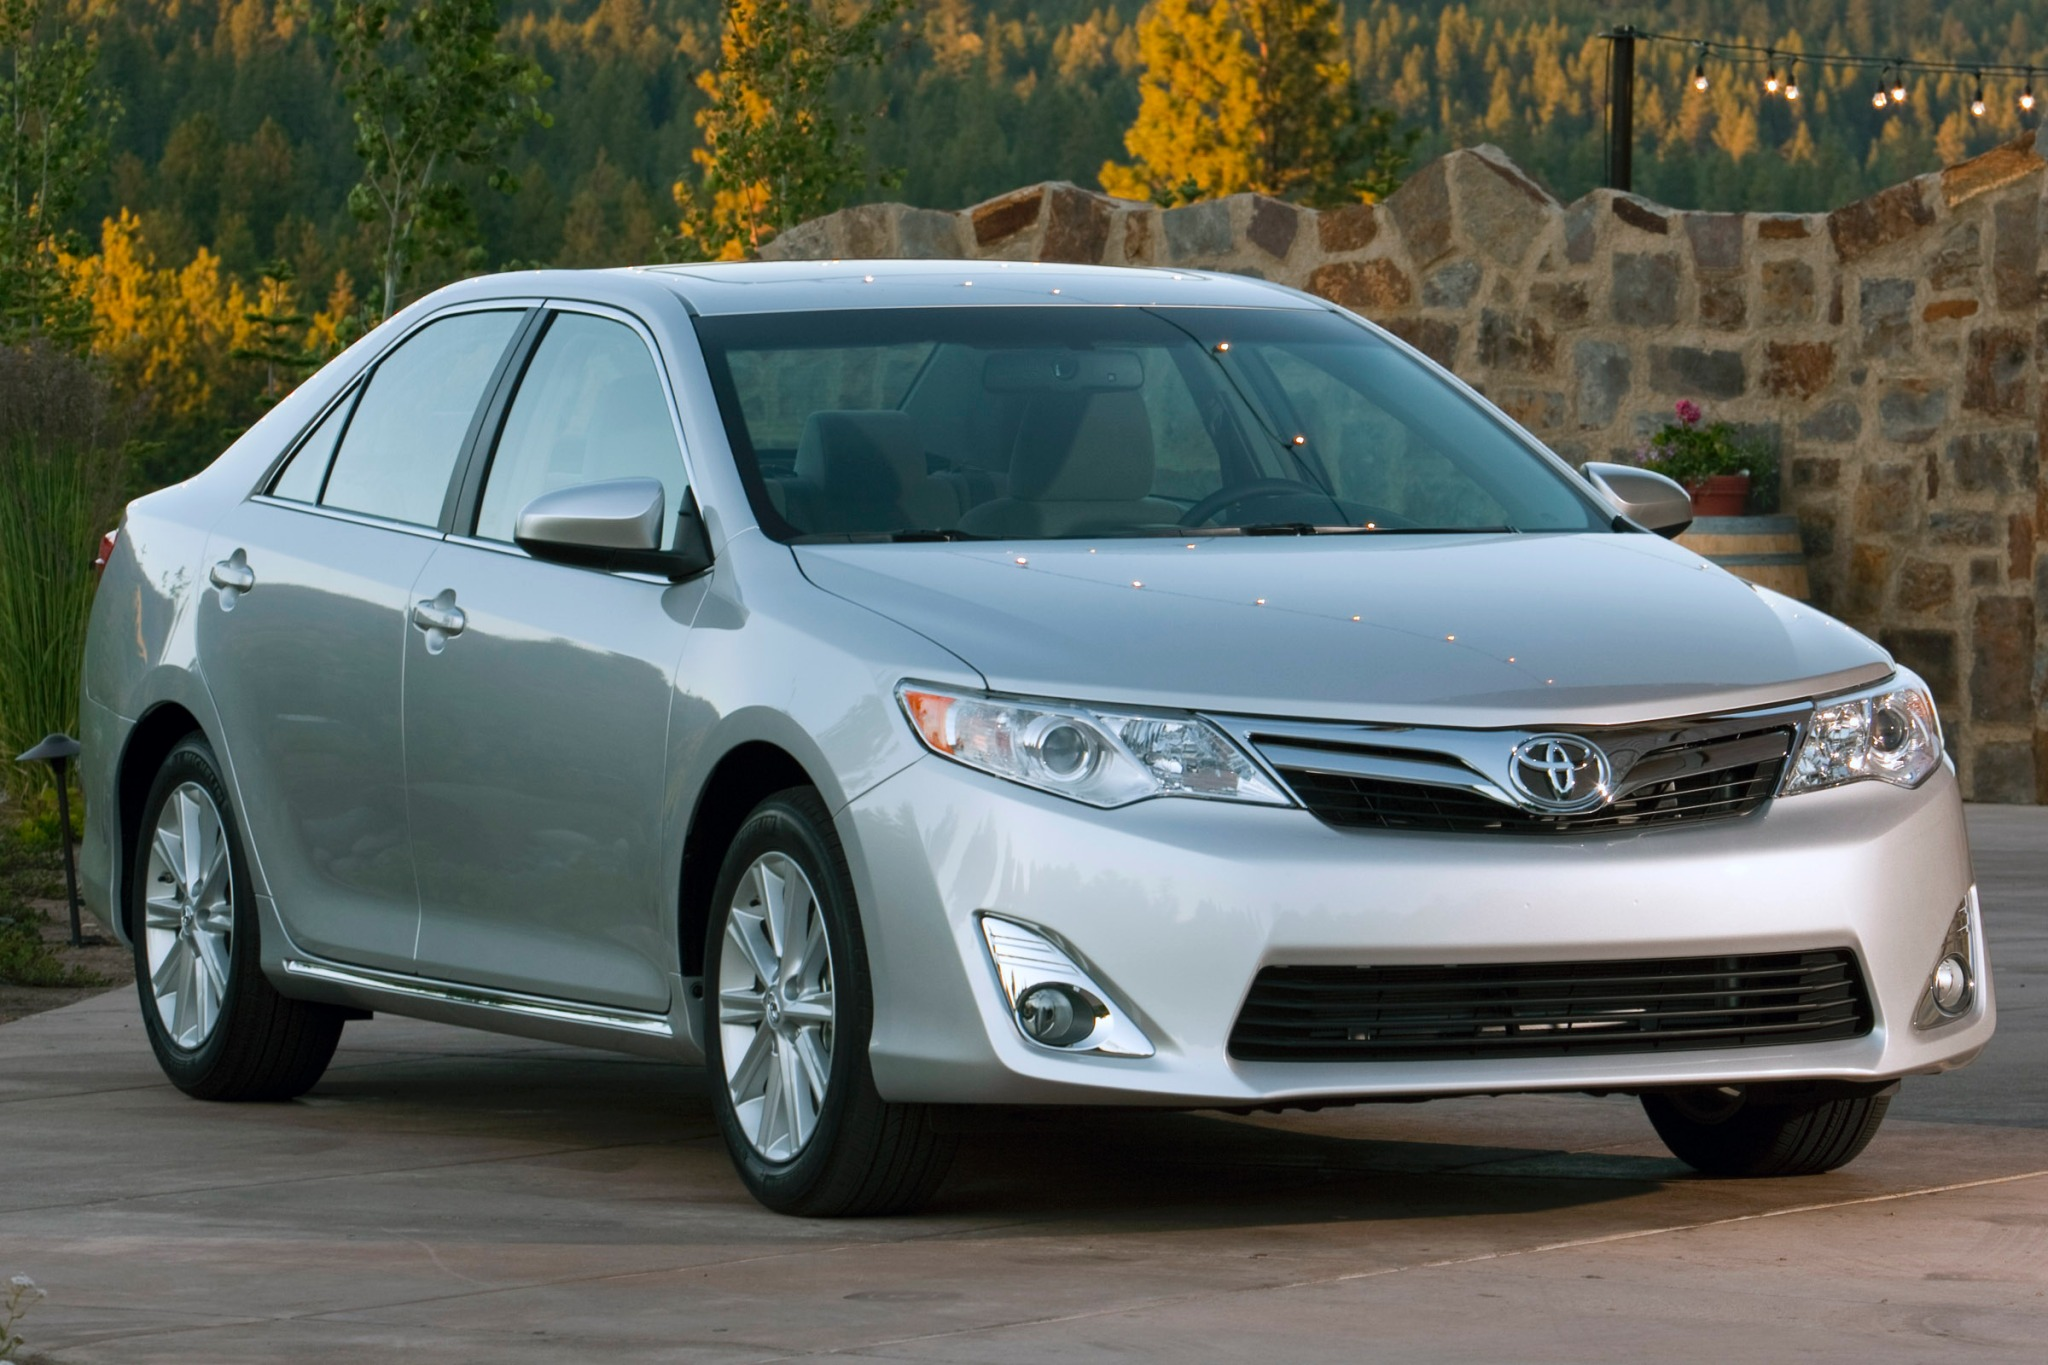 2017 Toyota Camry 12 Xle Sed Exterior